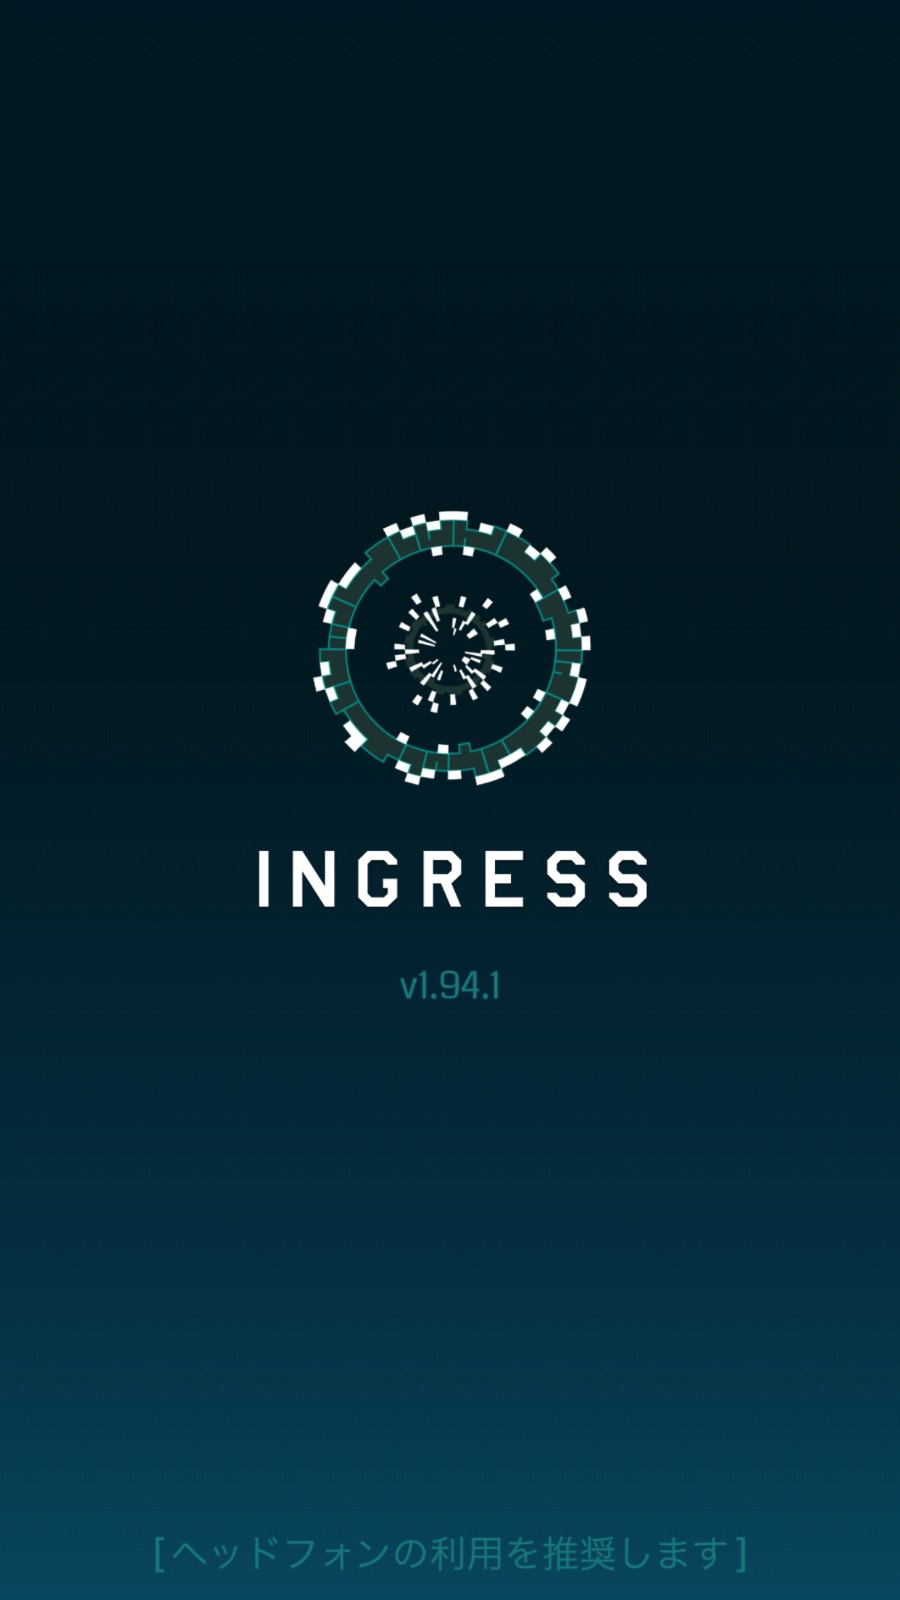 【Ingress】iOS版「Ingress 1.94.1」リリース